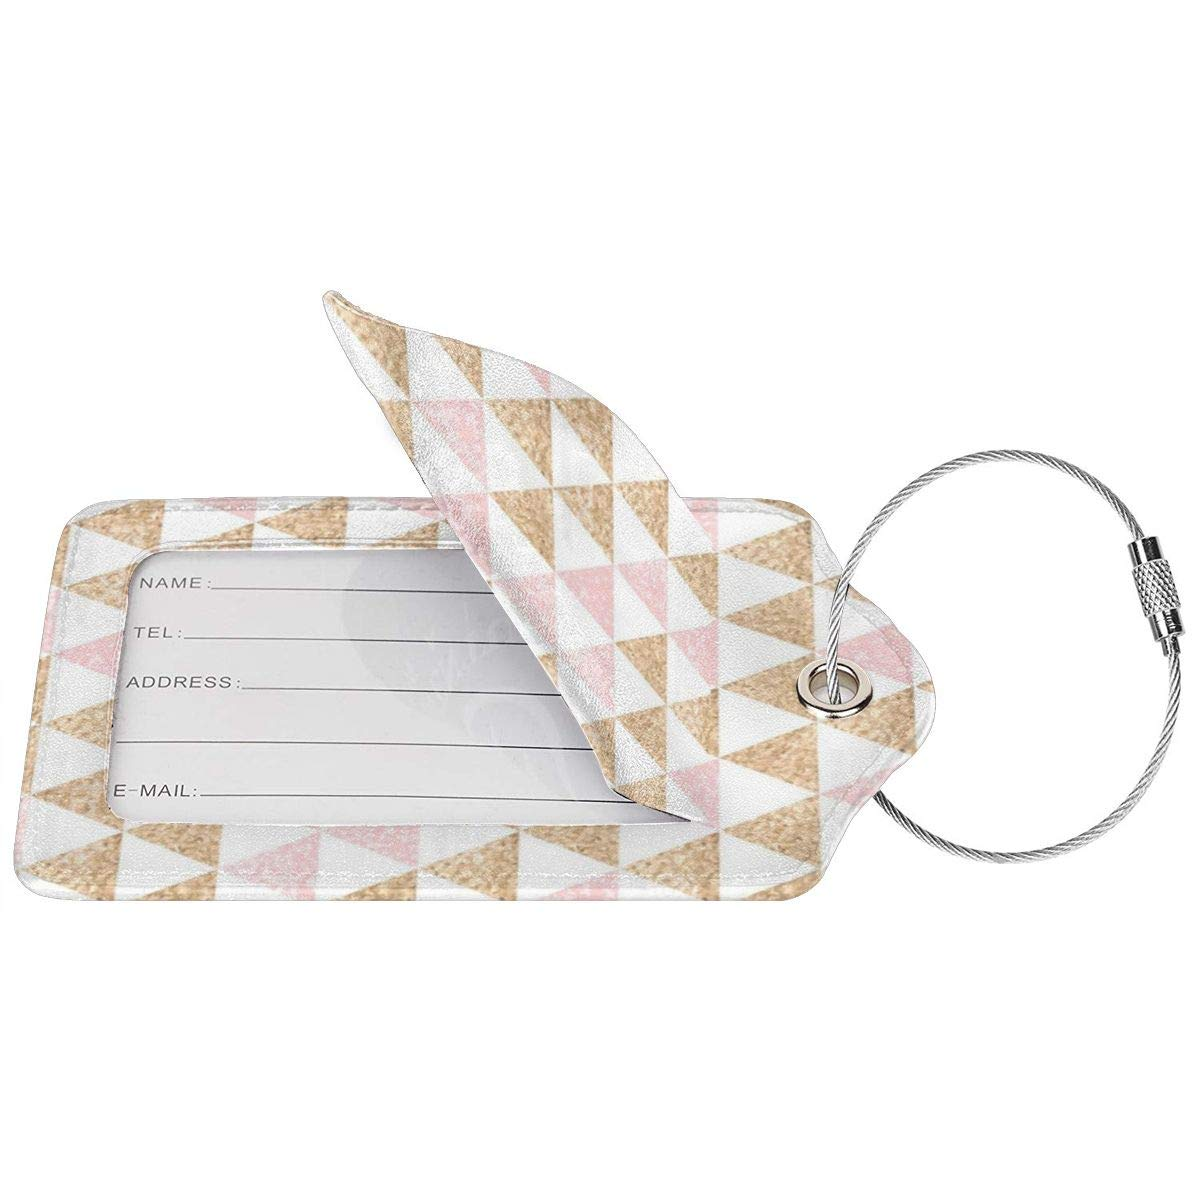 Leather Luggage Tag Rose Gold Pink Triangle Geometric Luggage Tags For Suitcase Travel Lover Gifts For Men Women 4 PCS